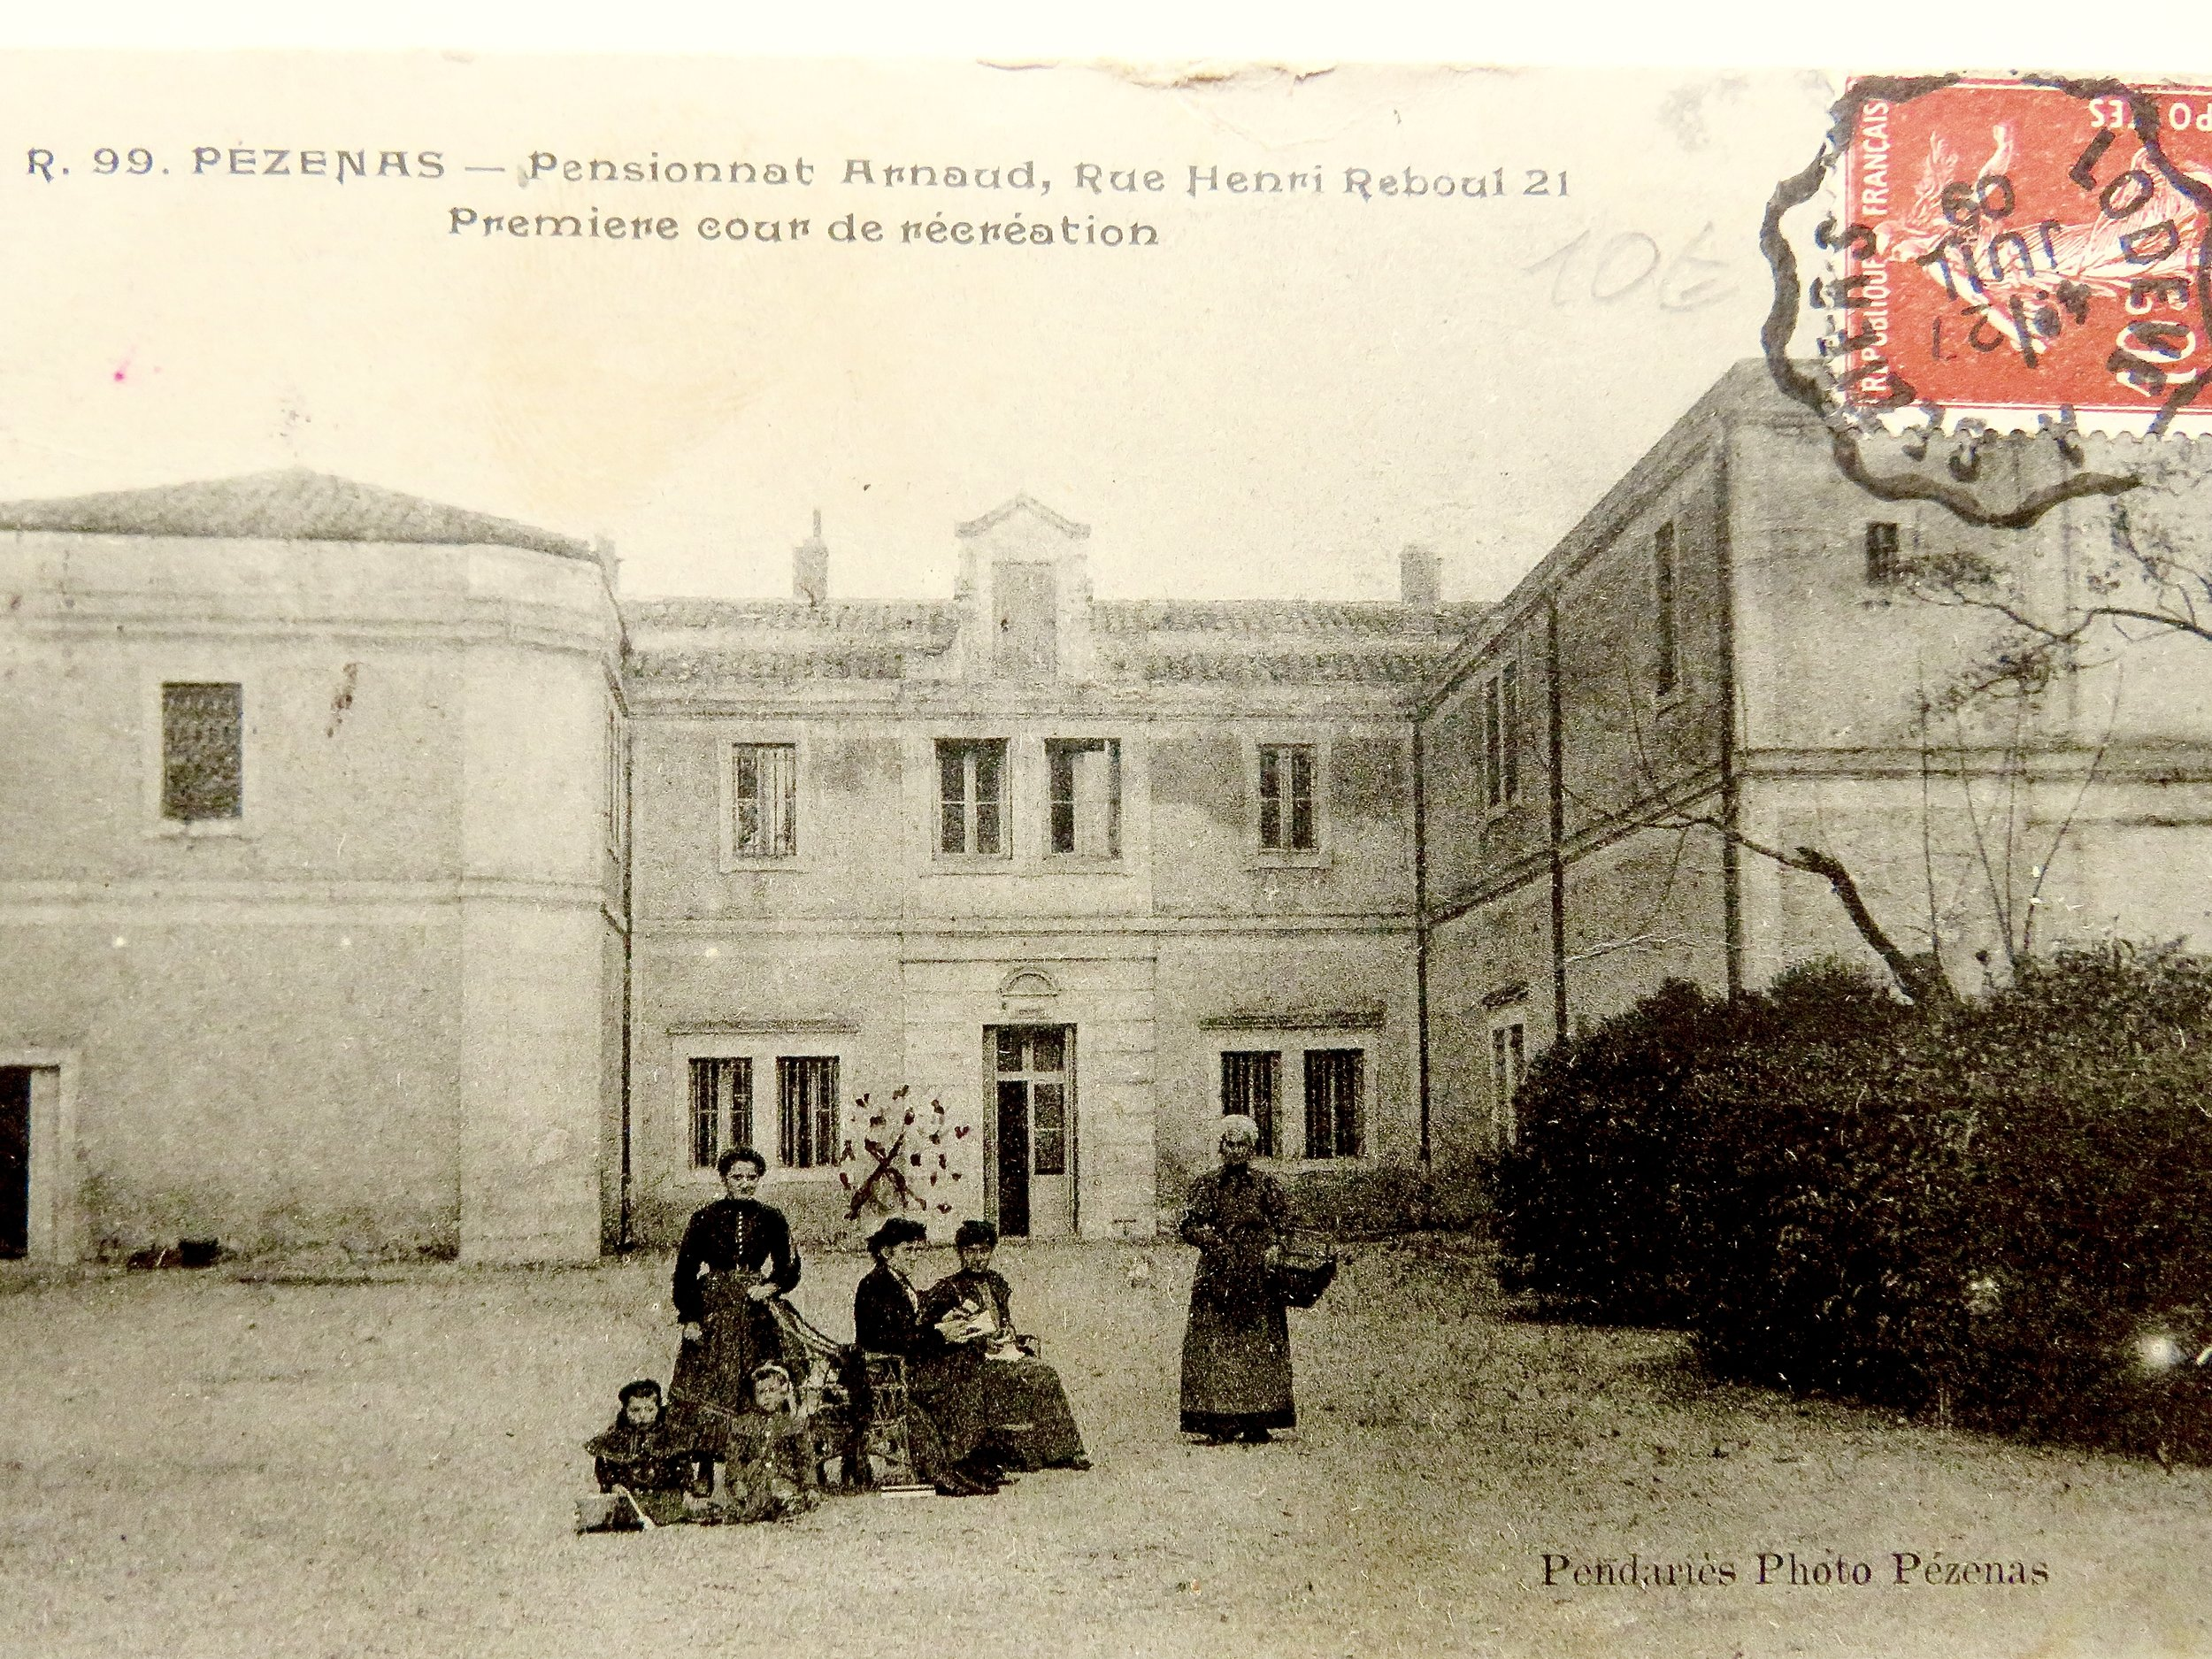 Convent: 1909 postcard found at flea market